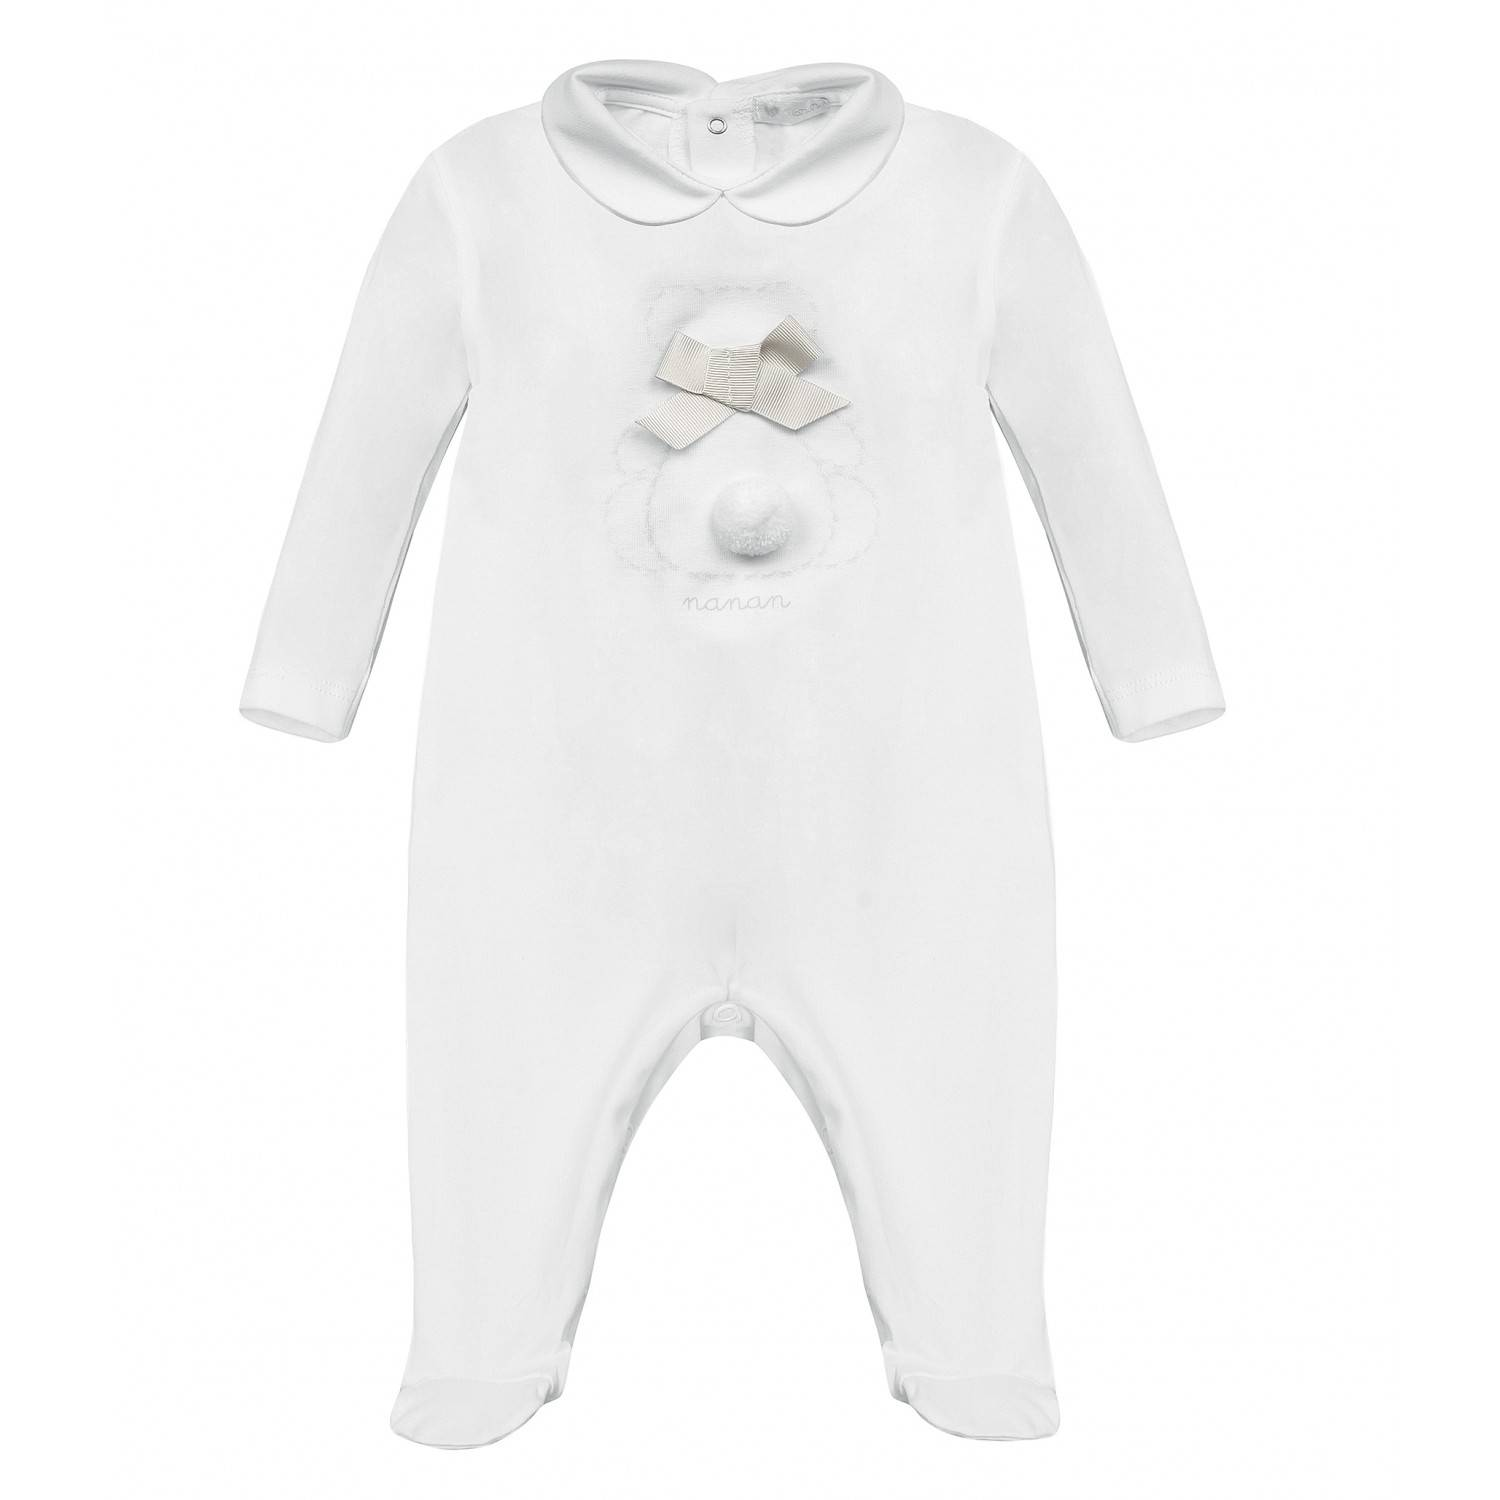 Nanan Onesie Ours Blanc Taille 6 Mois